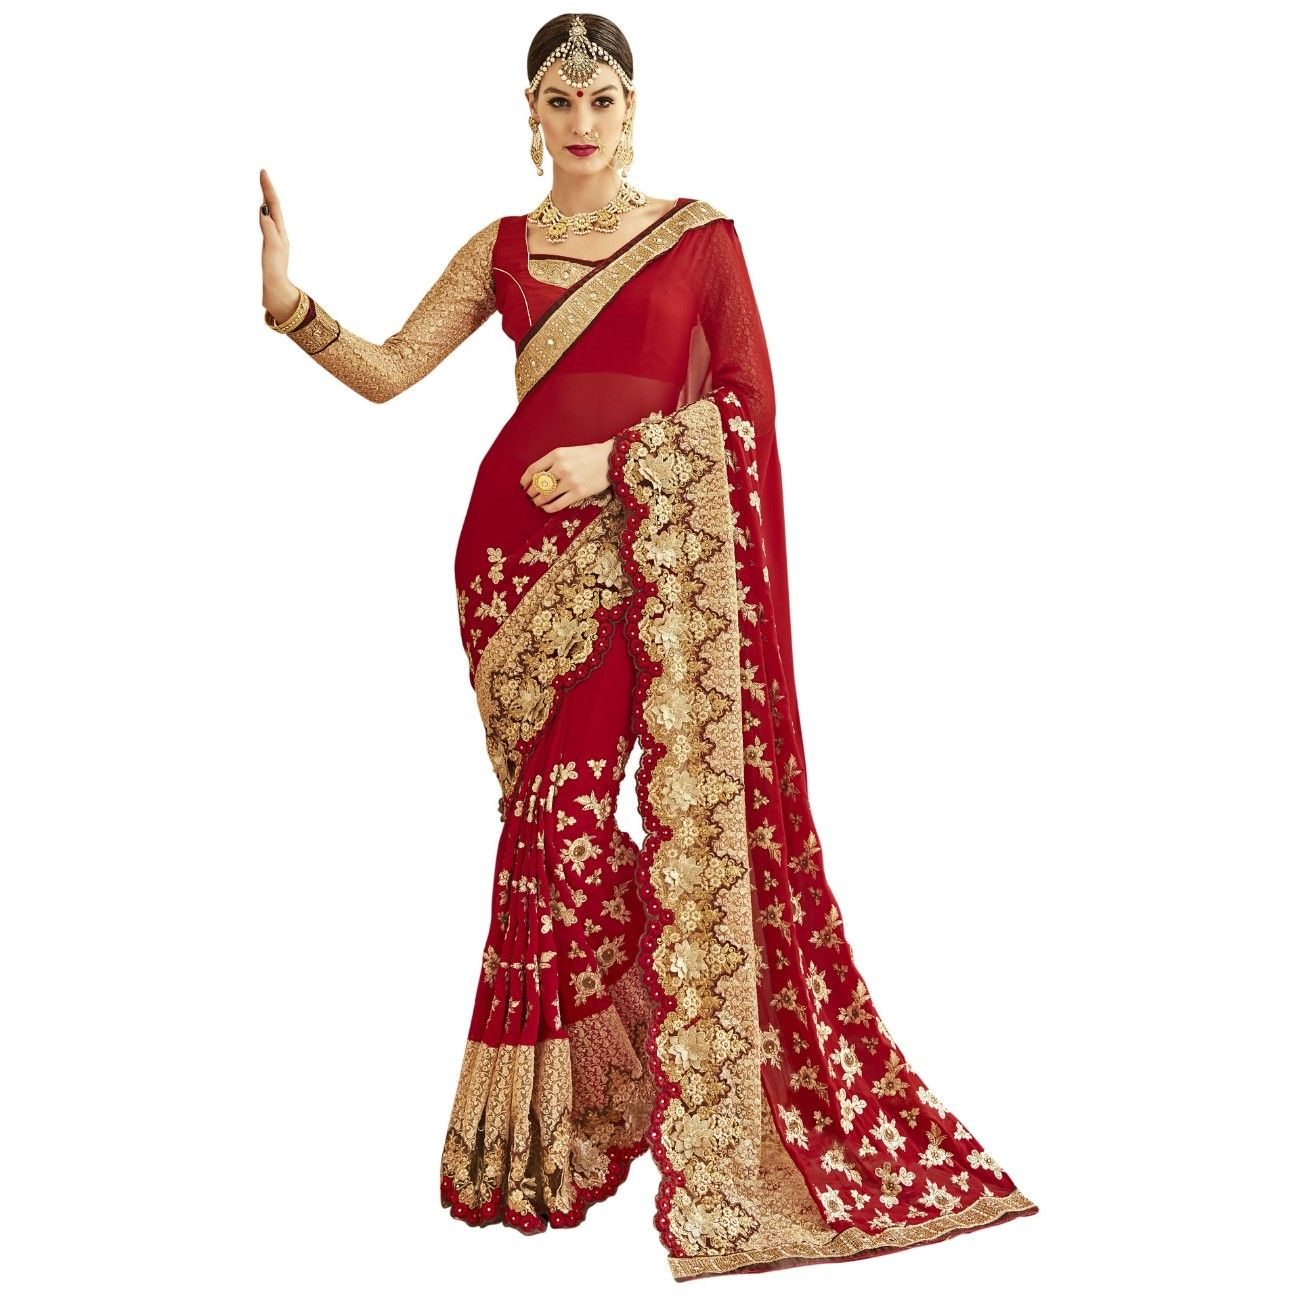 f6b1b770c7 Red Colored Embroidered Faux Georgette Party Wear Saree Triveni ...